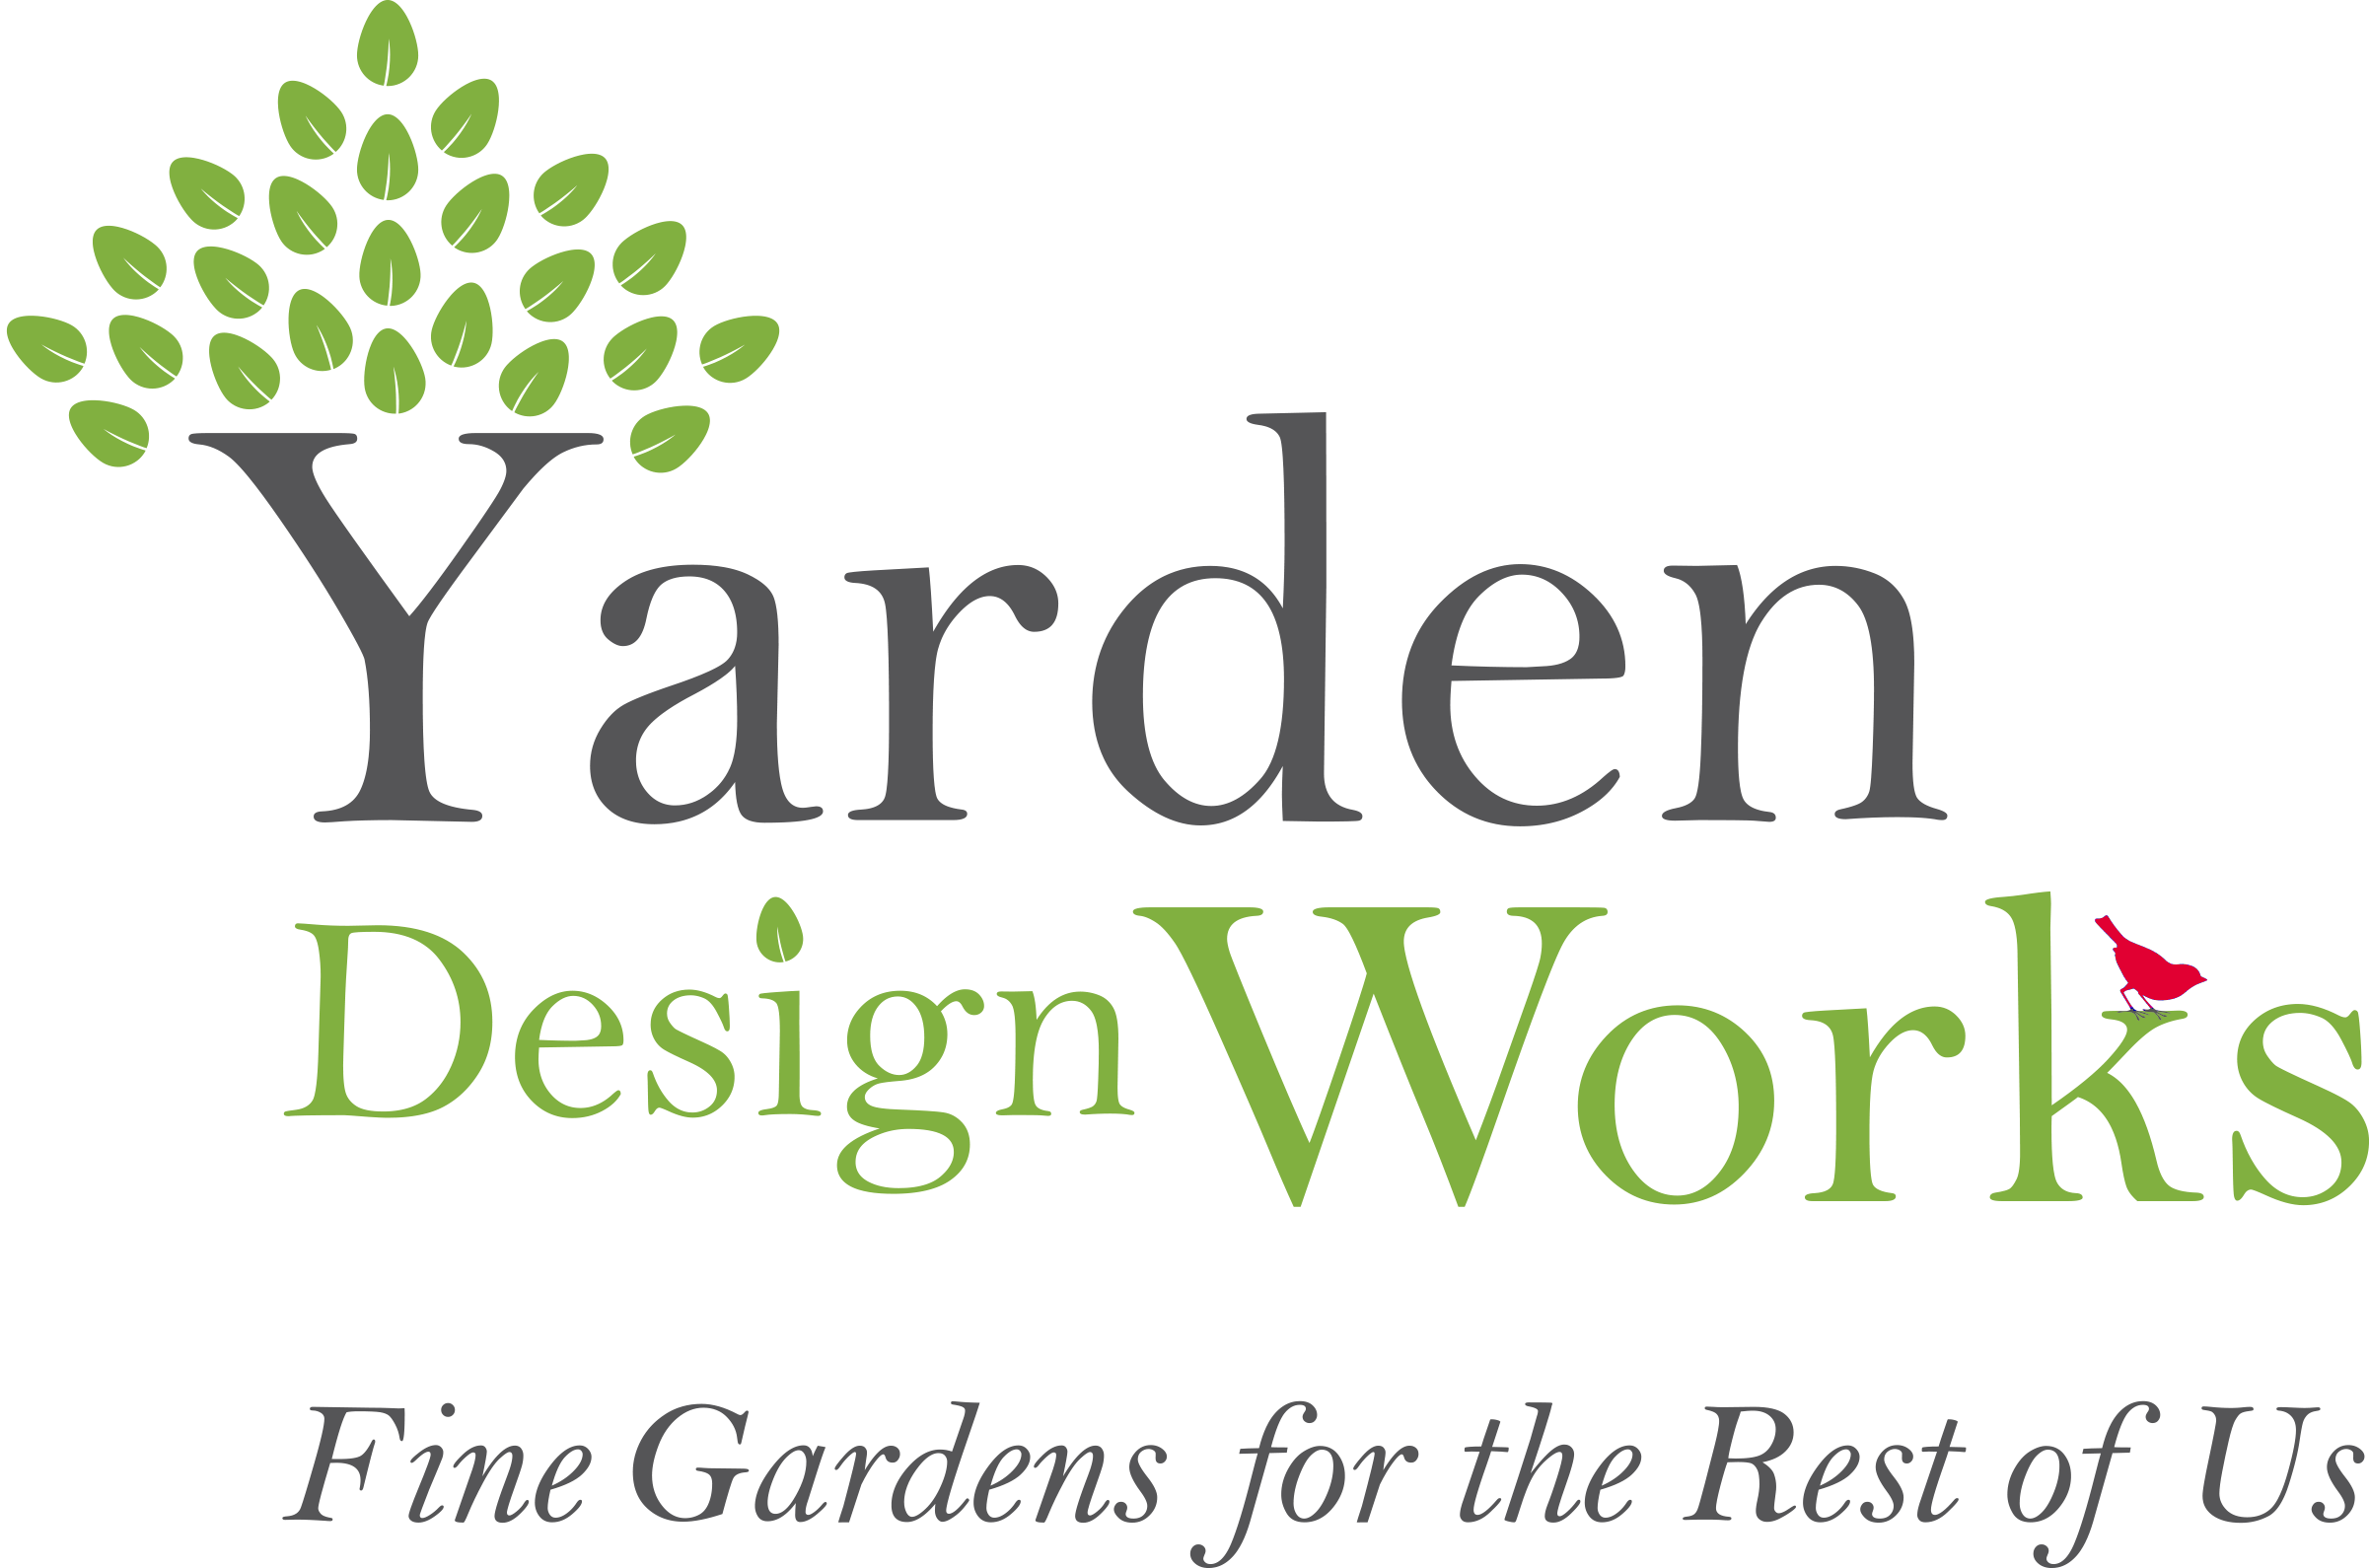 Yarden Design Works